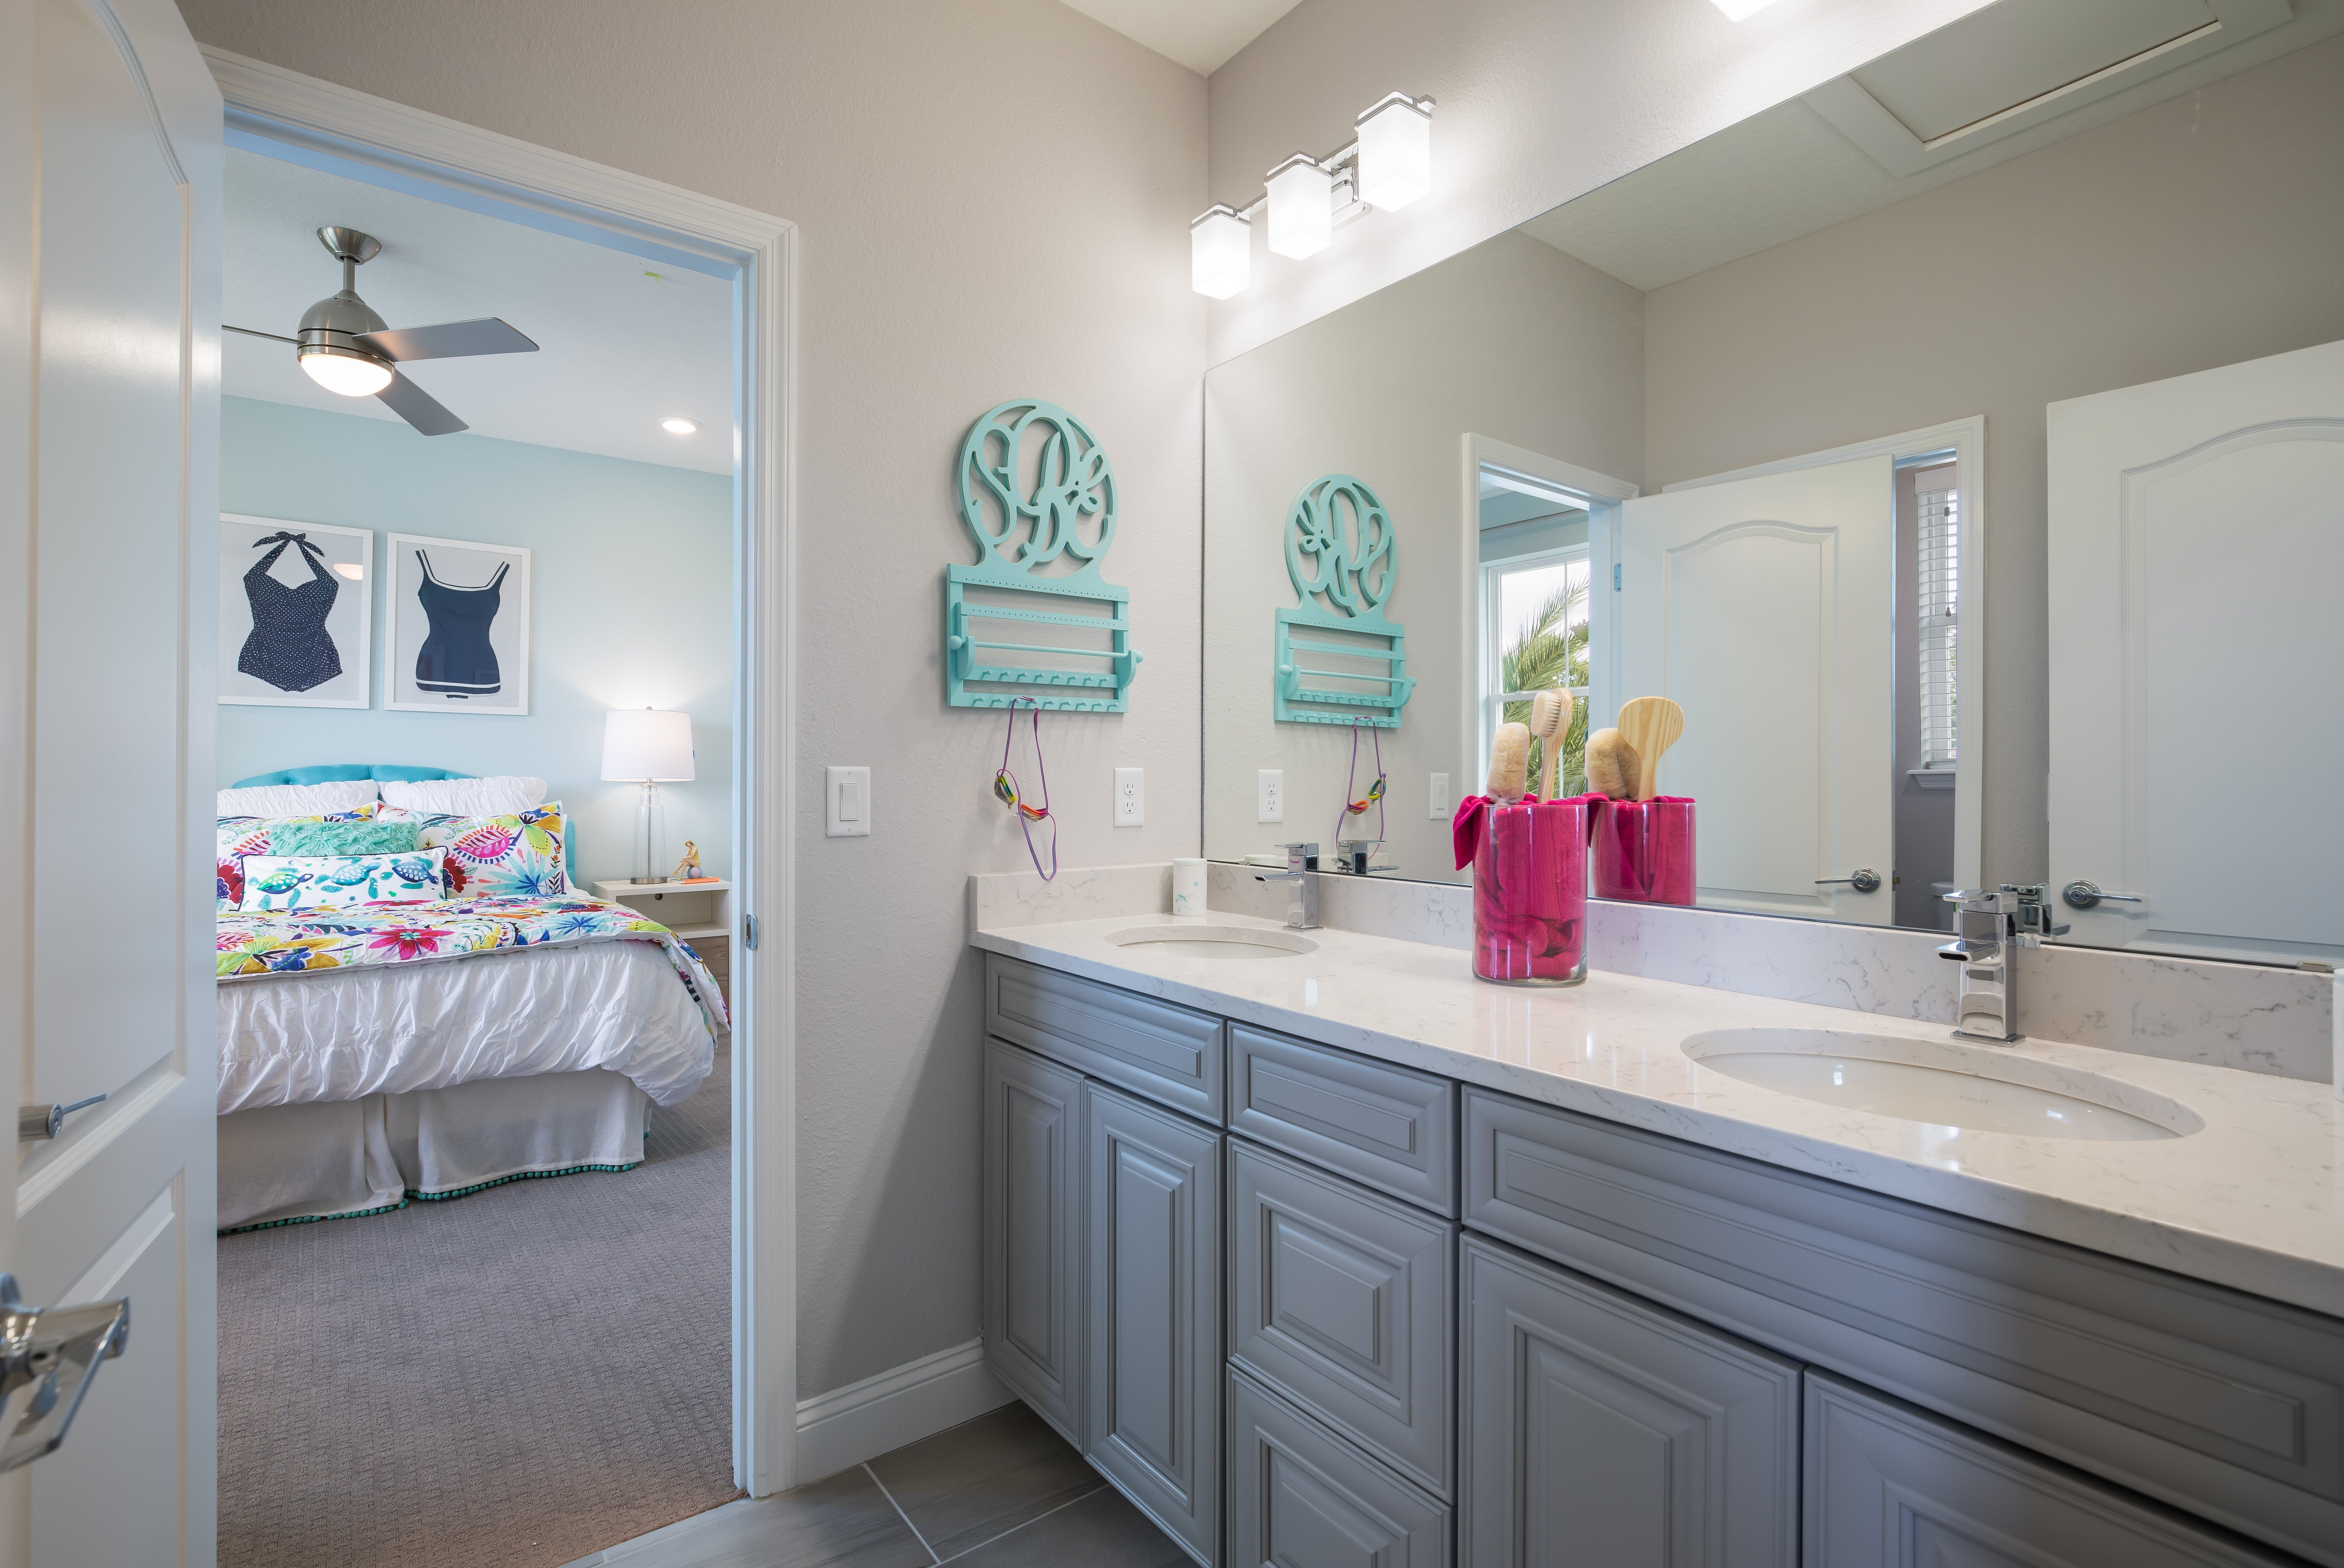 Bathroom featured in the CRAWFORD By Lennar in Jacksonville-St. Augustine, FL